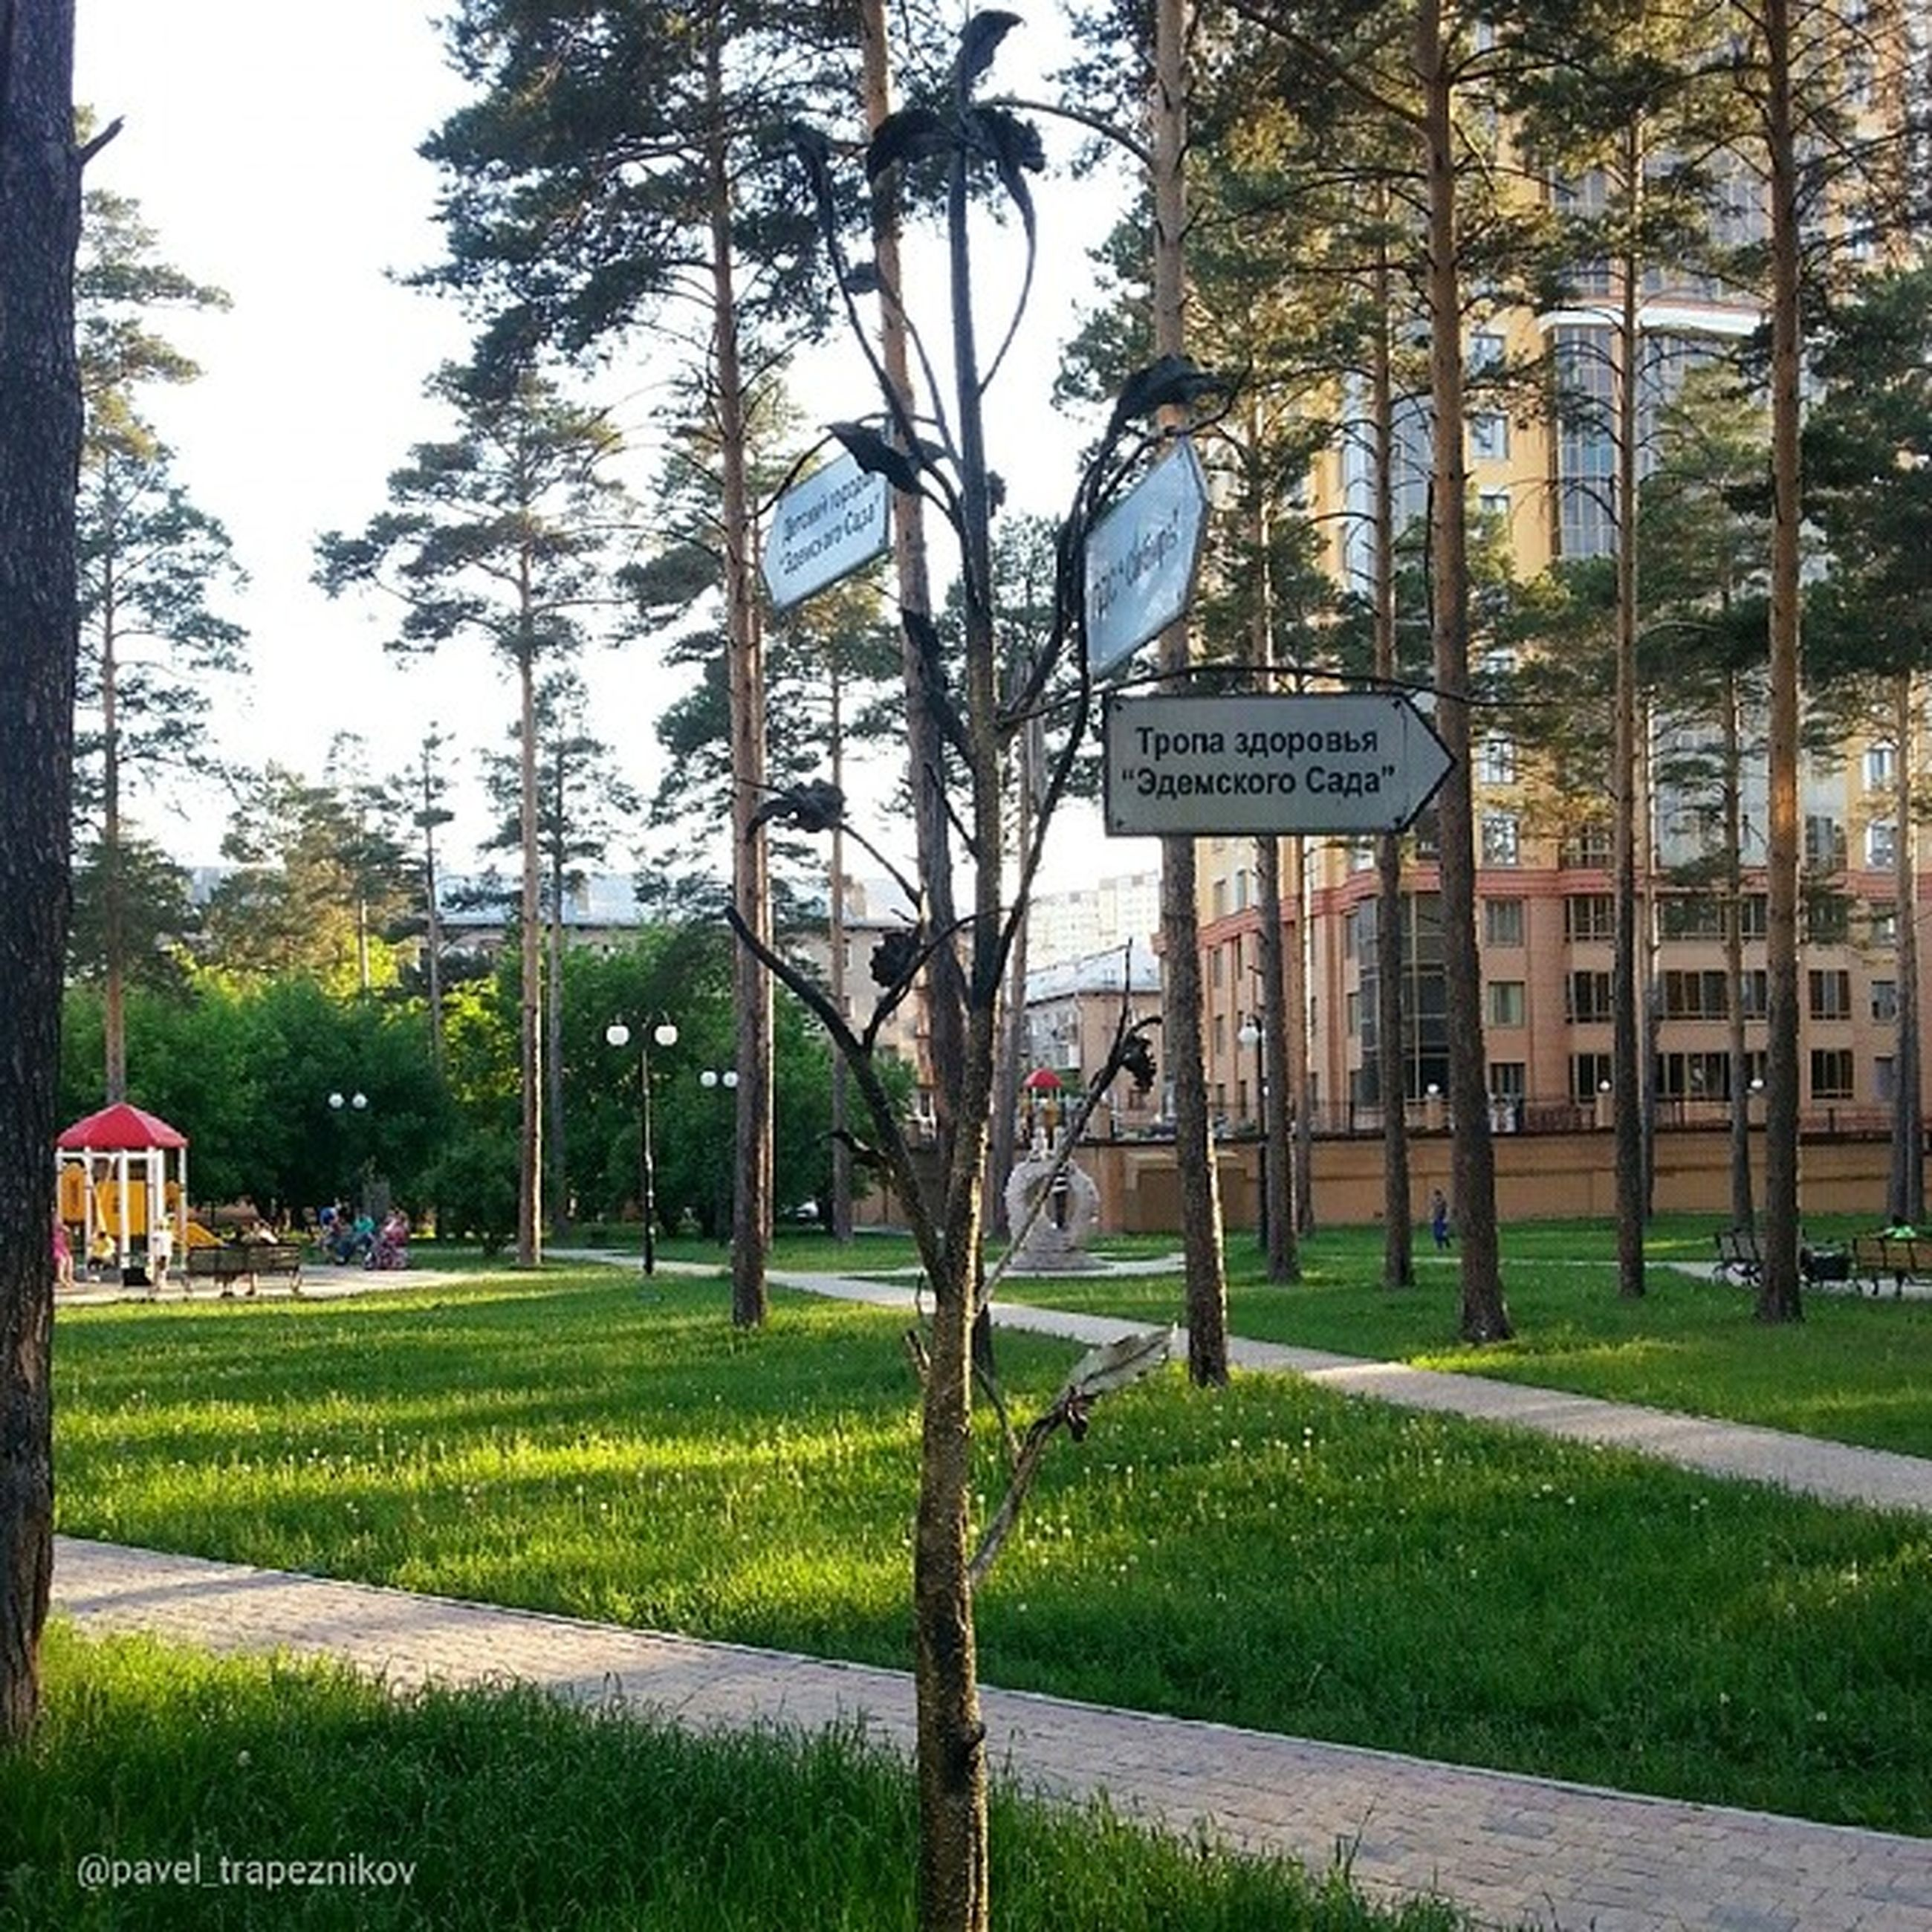 tree, grass, building exterior, transportation, tree trunk, built structure, bare tree, green color, architecture, growth, text, communication, road sign, western script, field, branch, day, clear sky, sky, lawn